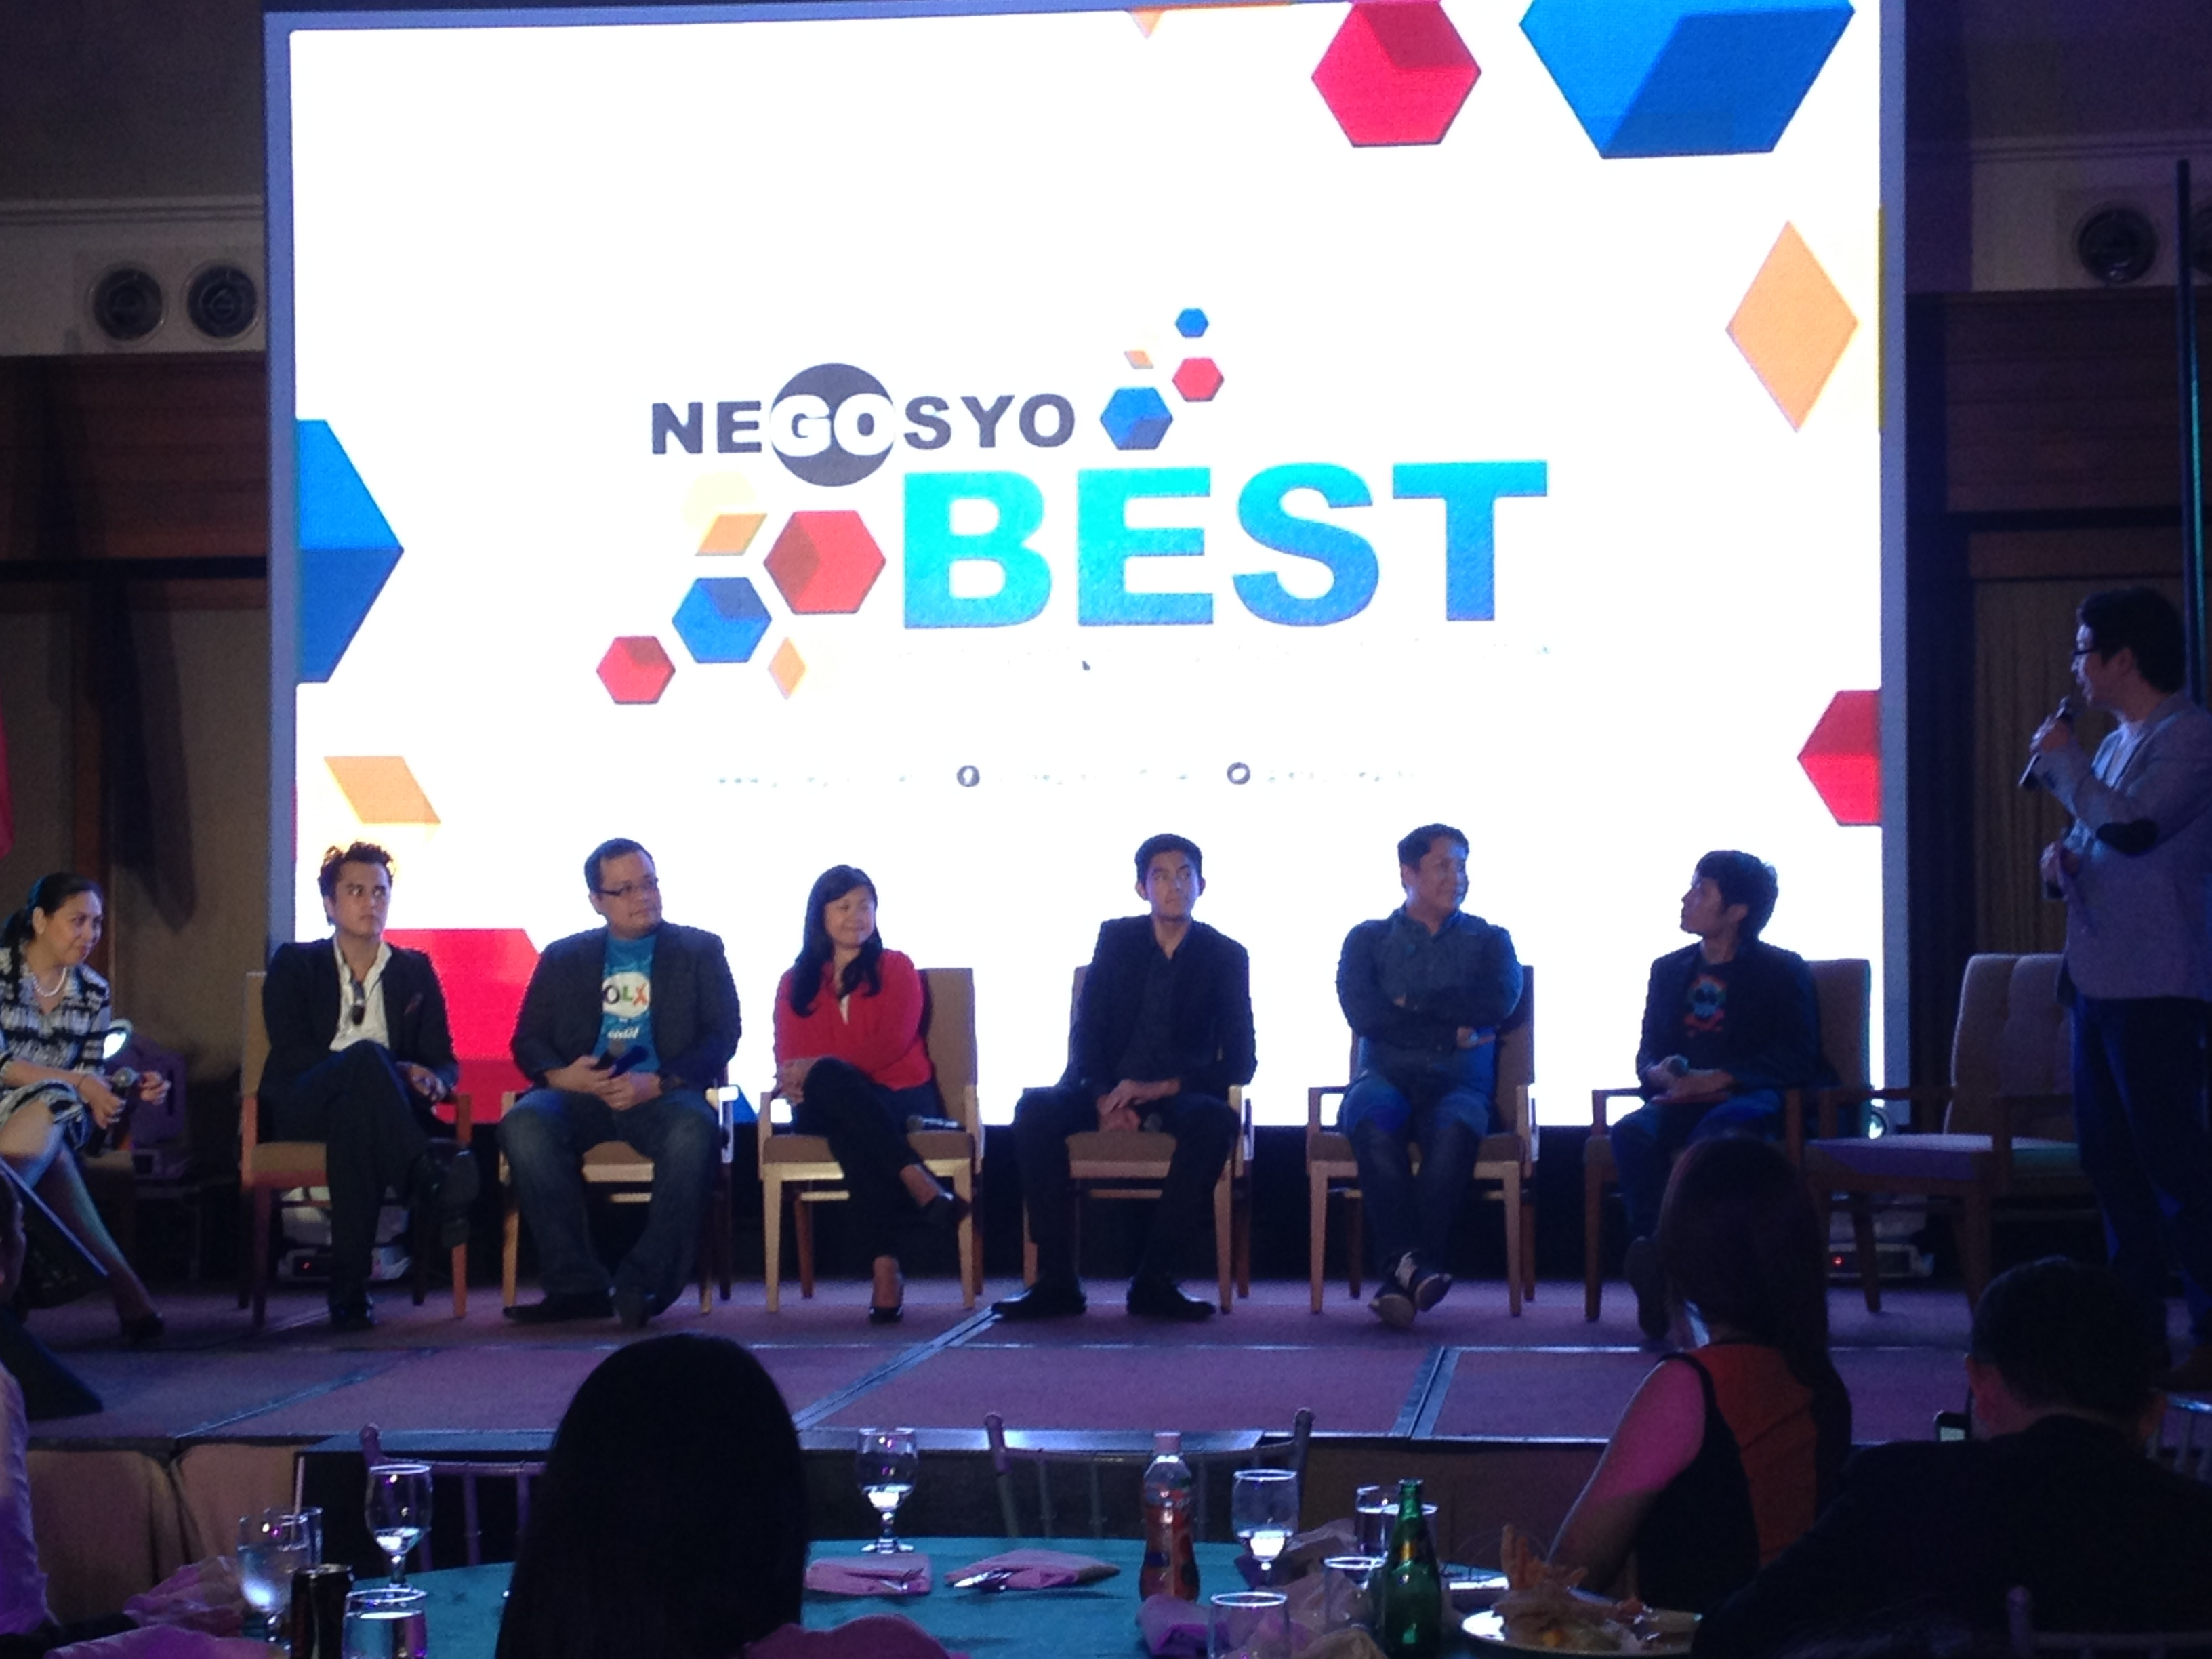 Go Negosyo launches mentoring program for students and latest book